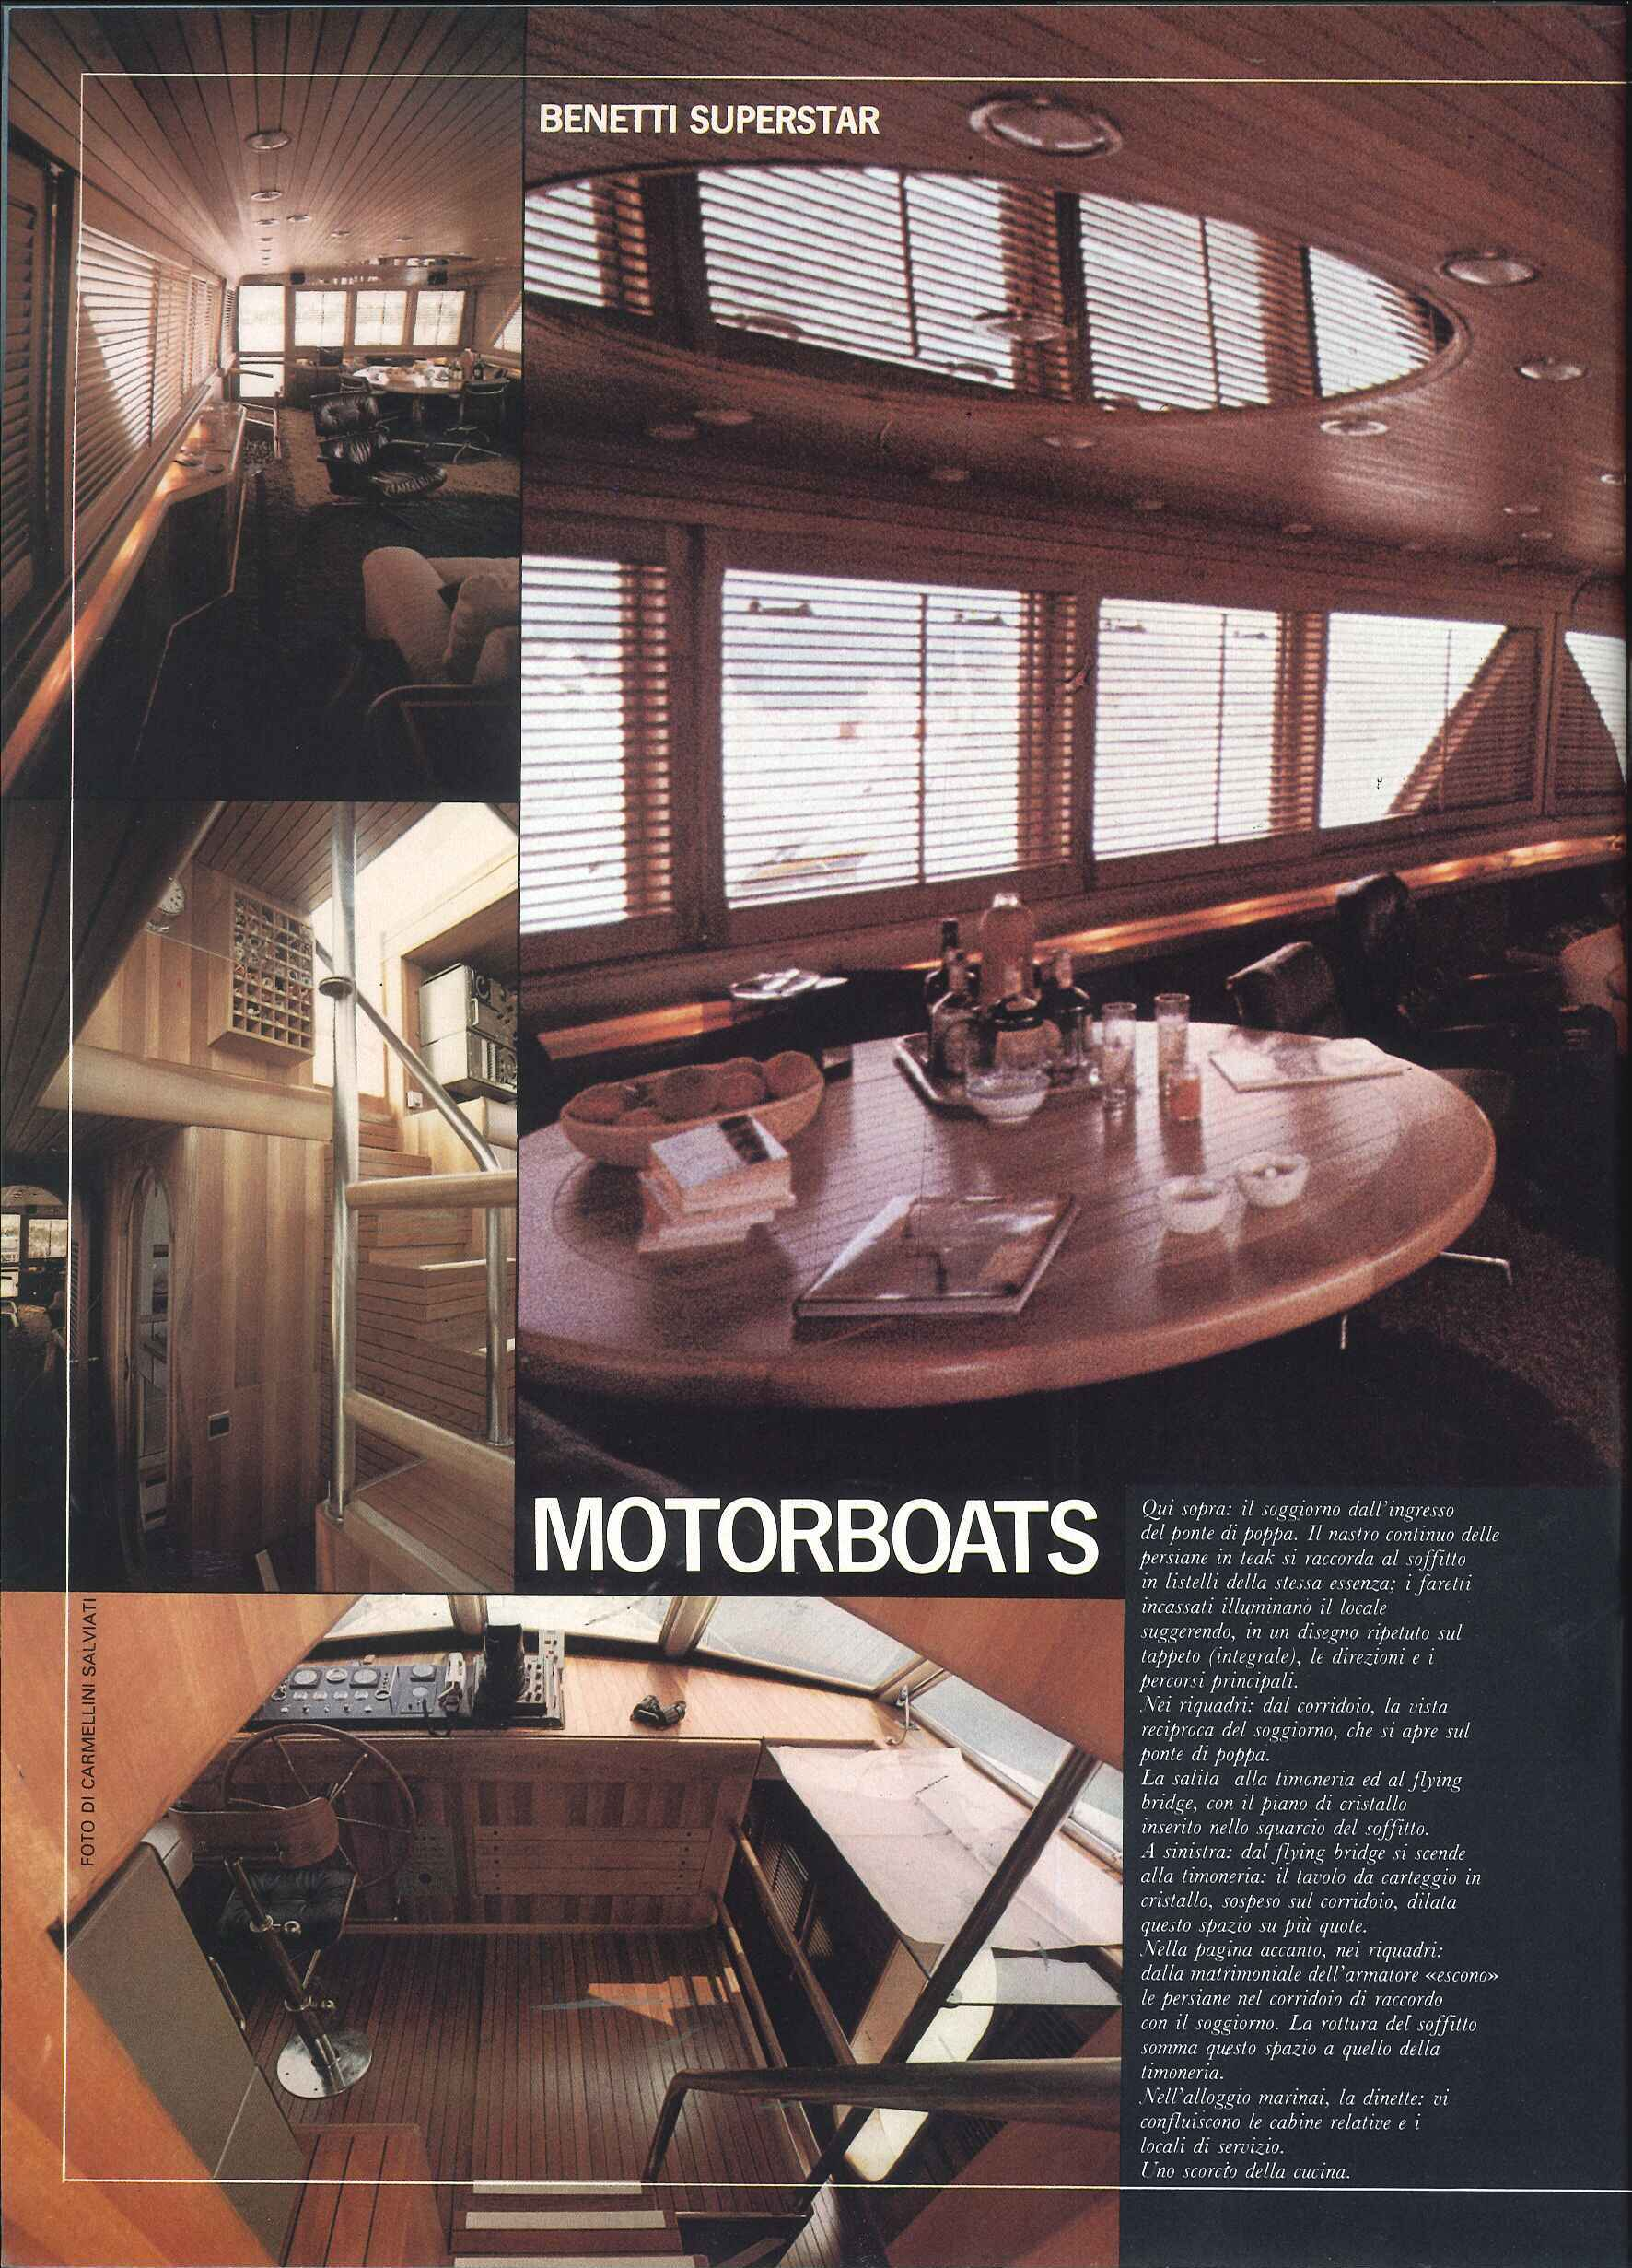 1977 09 PRESS MOTORBOATS UOMO MARE (4).jpg